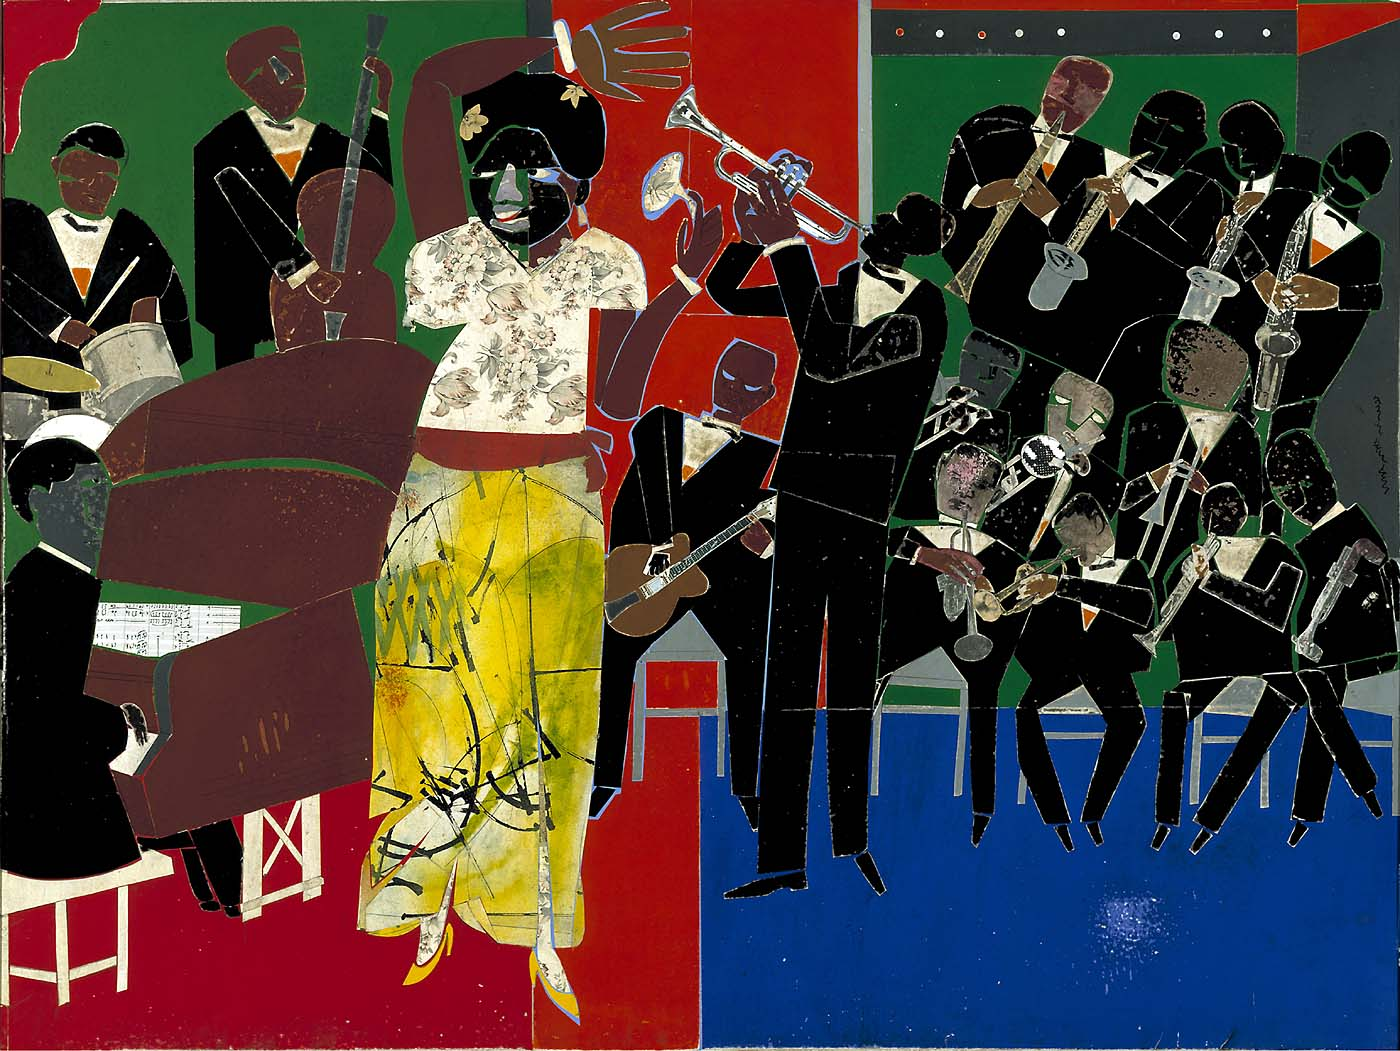 Empress of the Blues, 1974, Romare Bearden, Smithsonian American Art Museum